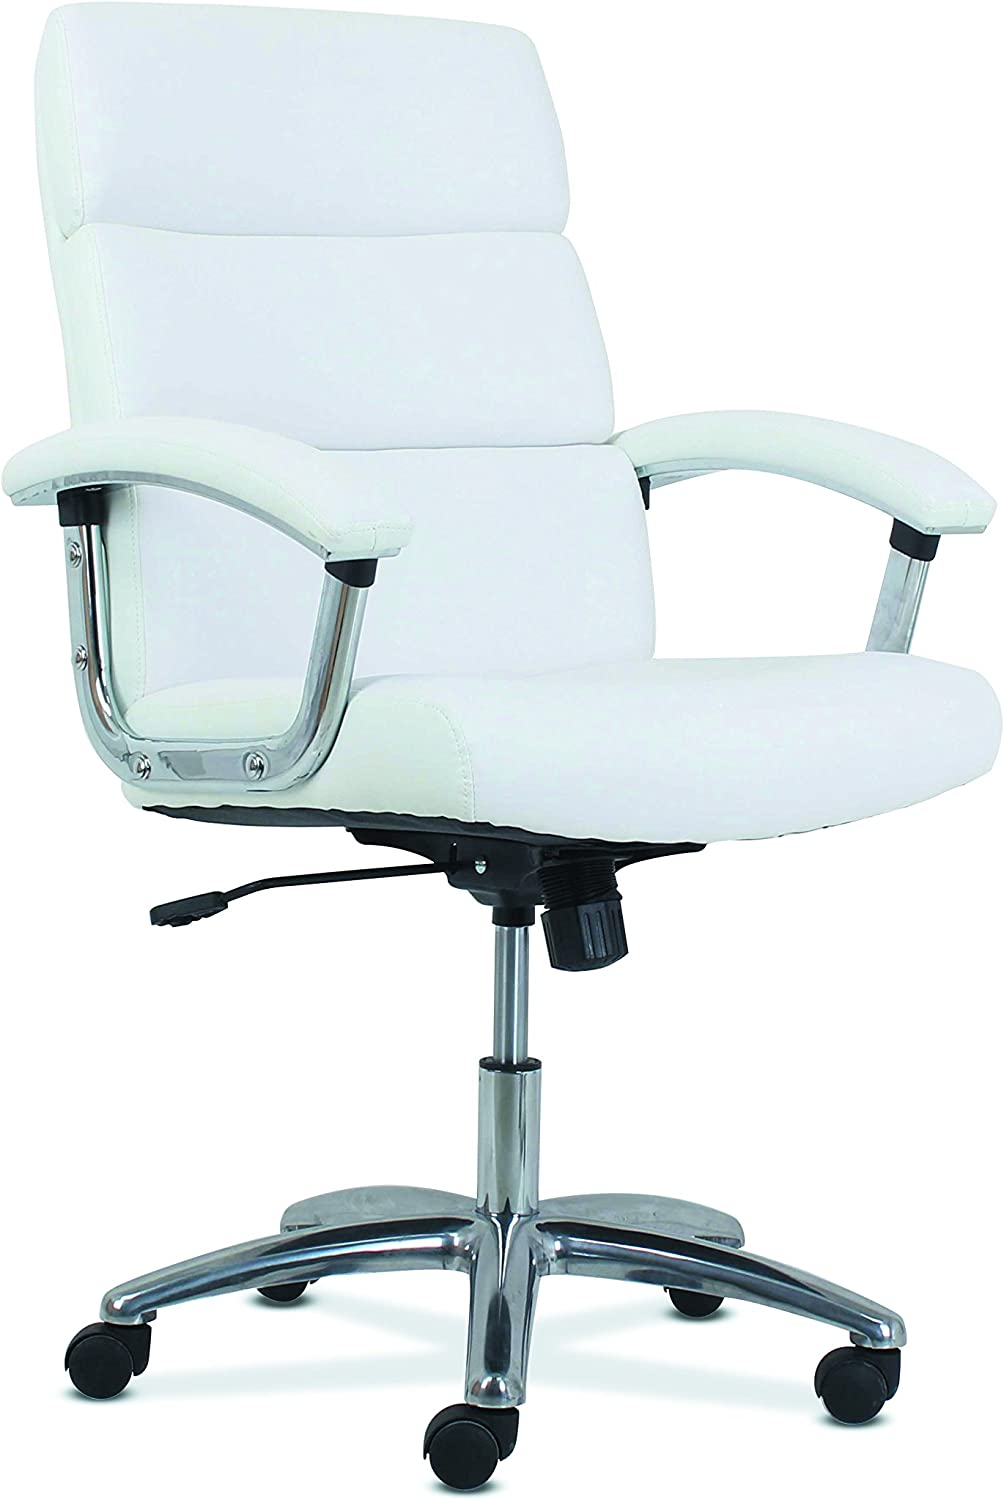 HON Traction High-Back Modern Executive Chair - Leather Computer Chair for Office Desk, White (HVL103)